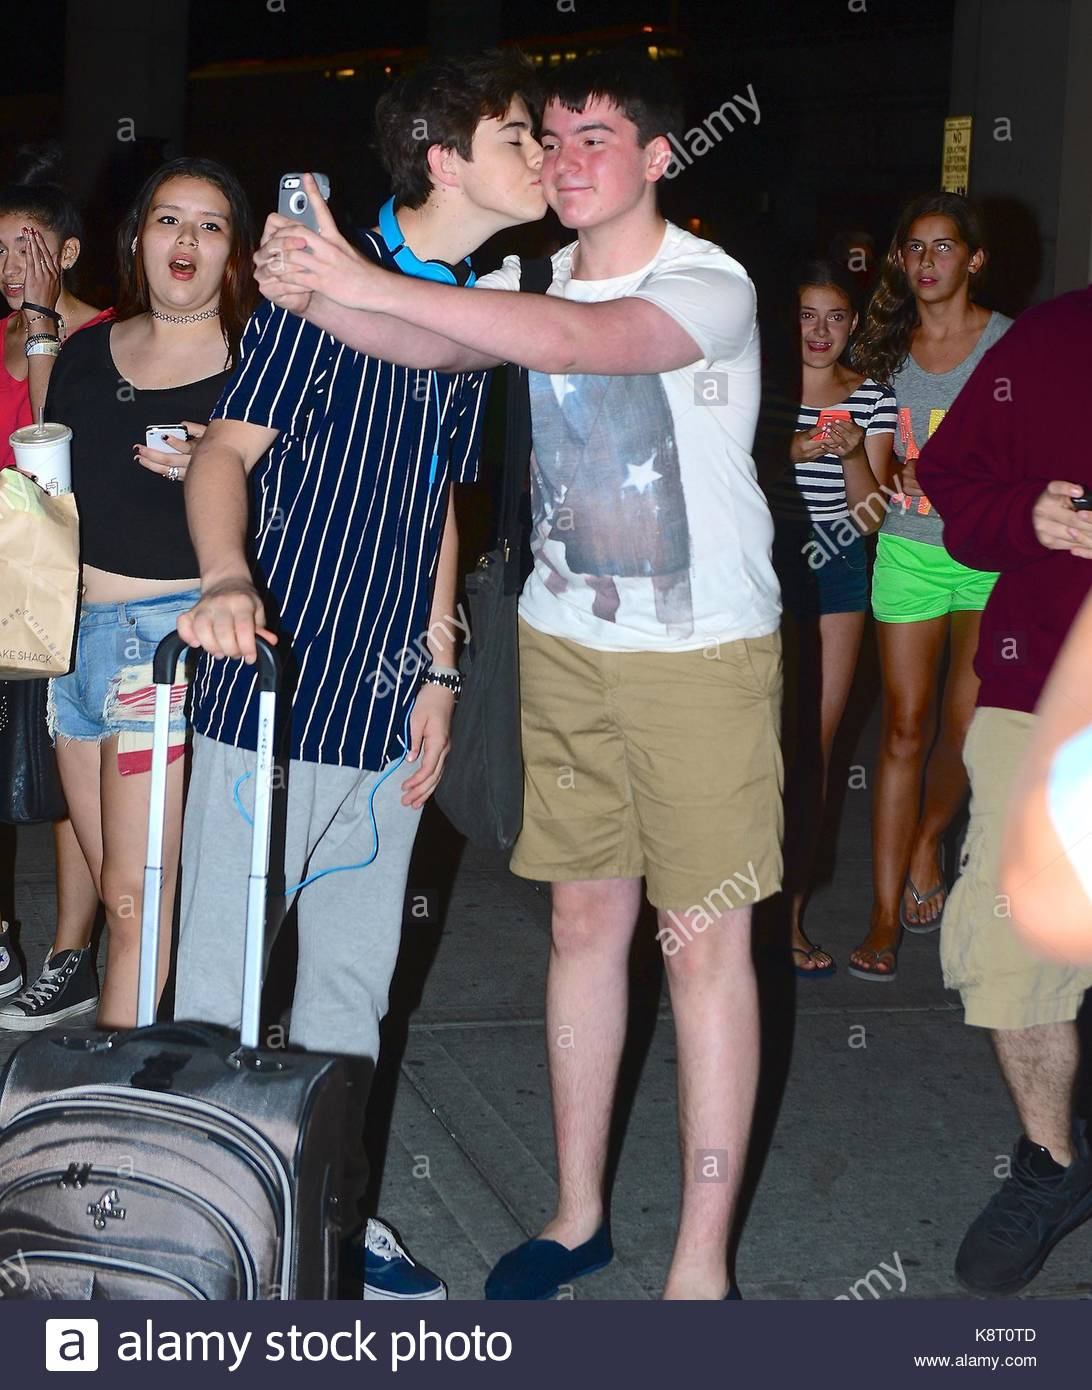 Nash grier cameron dallas and nash grier were spotted arriving in nash grier cameron dallas and nash grier were spotted arriving in nyc on monday they were greeted by a swarm of fans waiting to meet them m4hsunfo